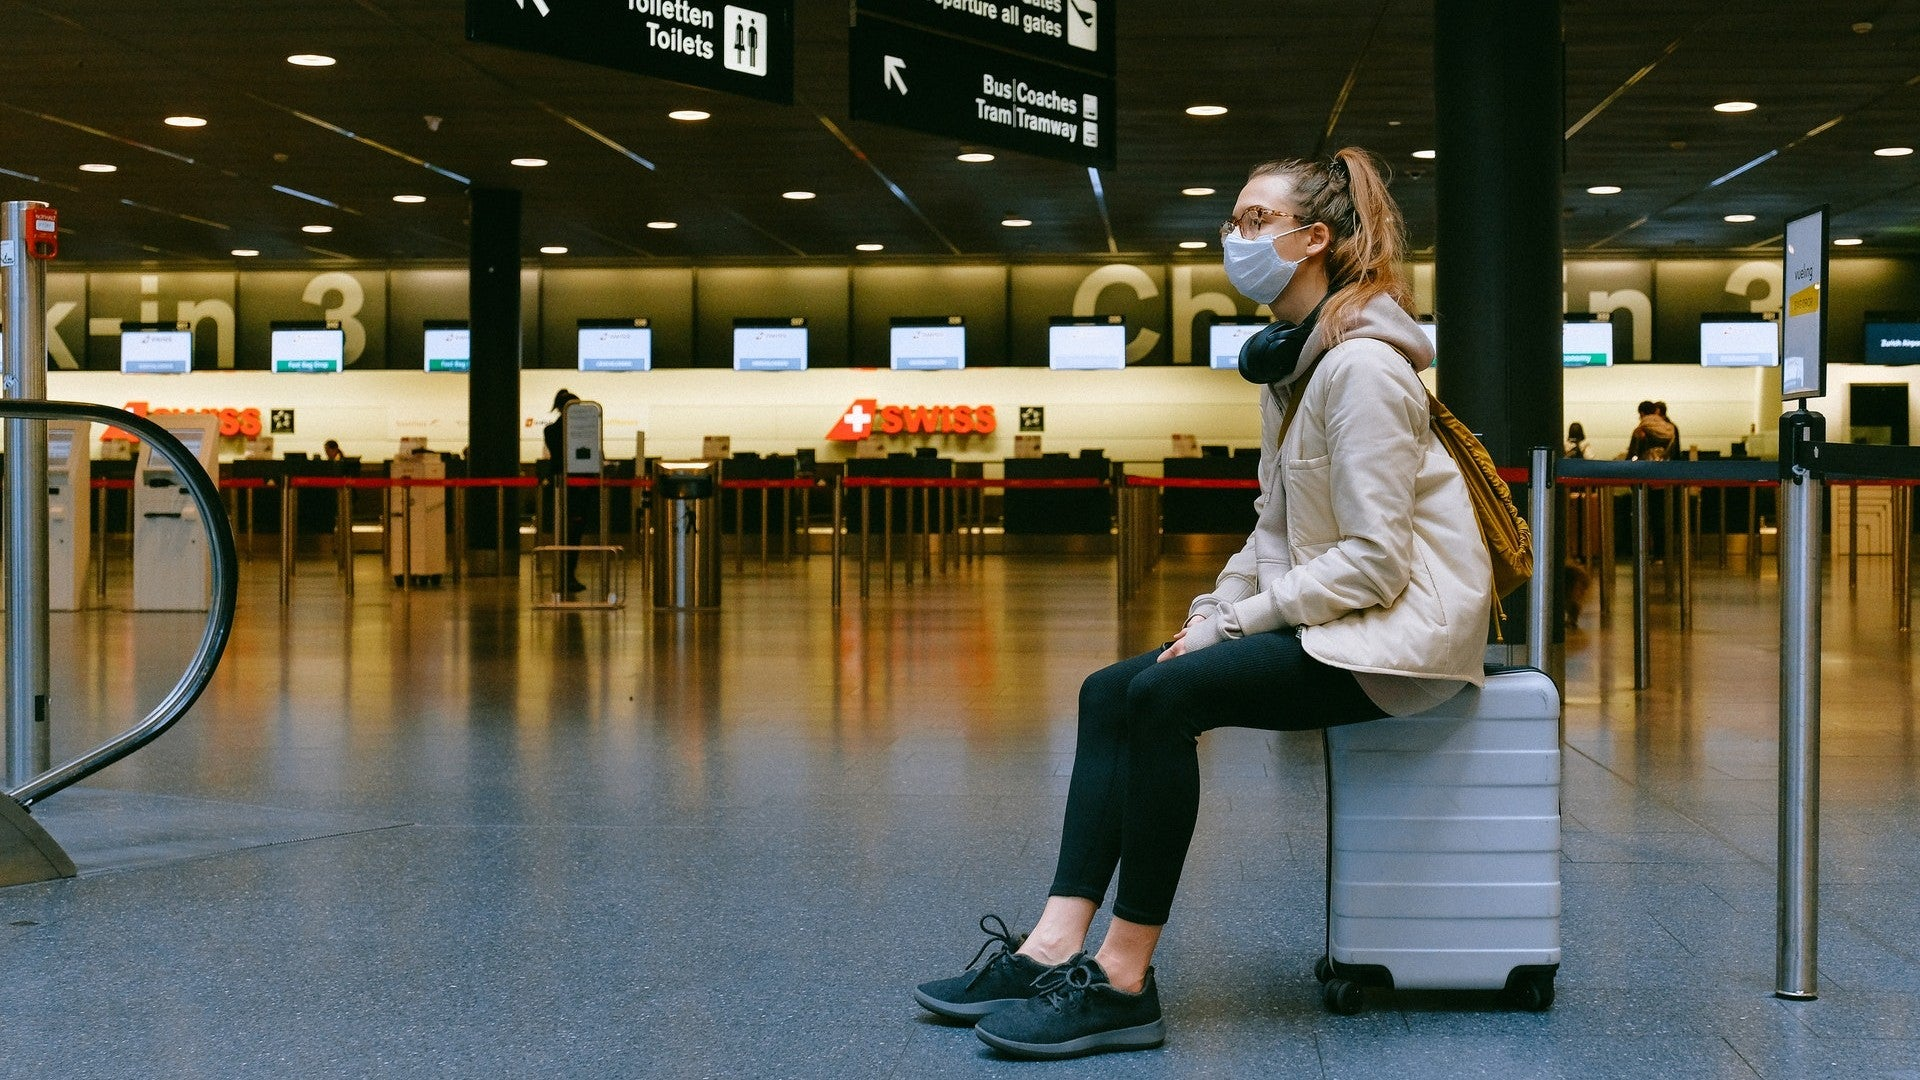 Traveler sits on suitcase in airport.